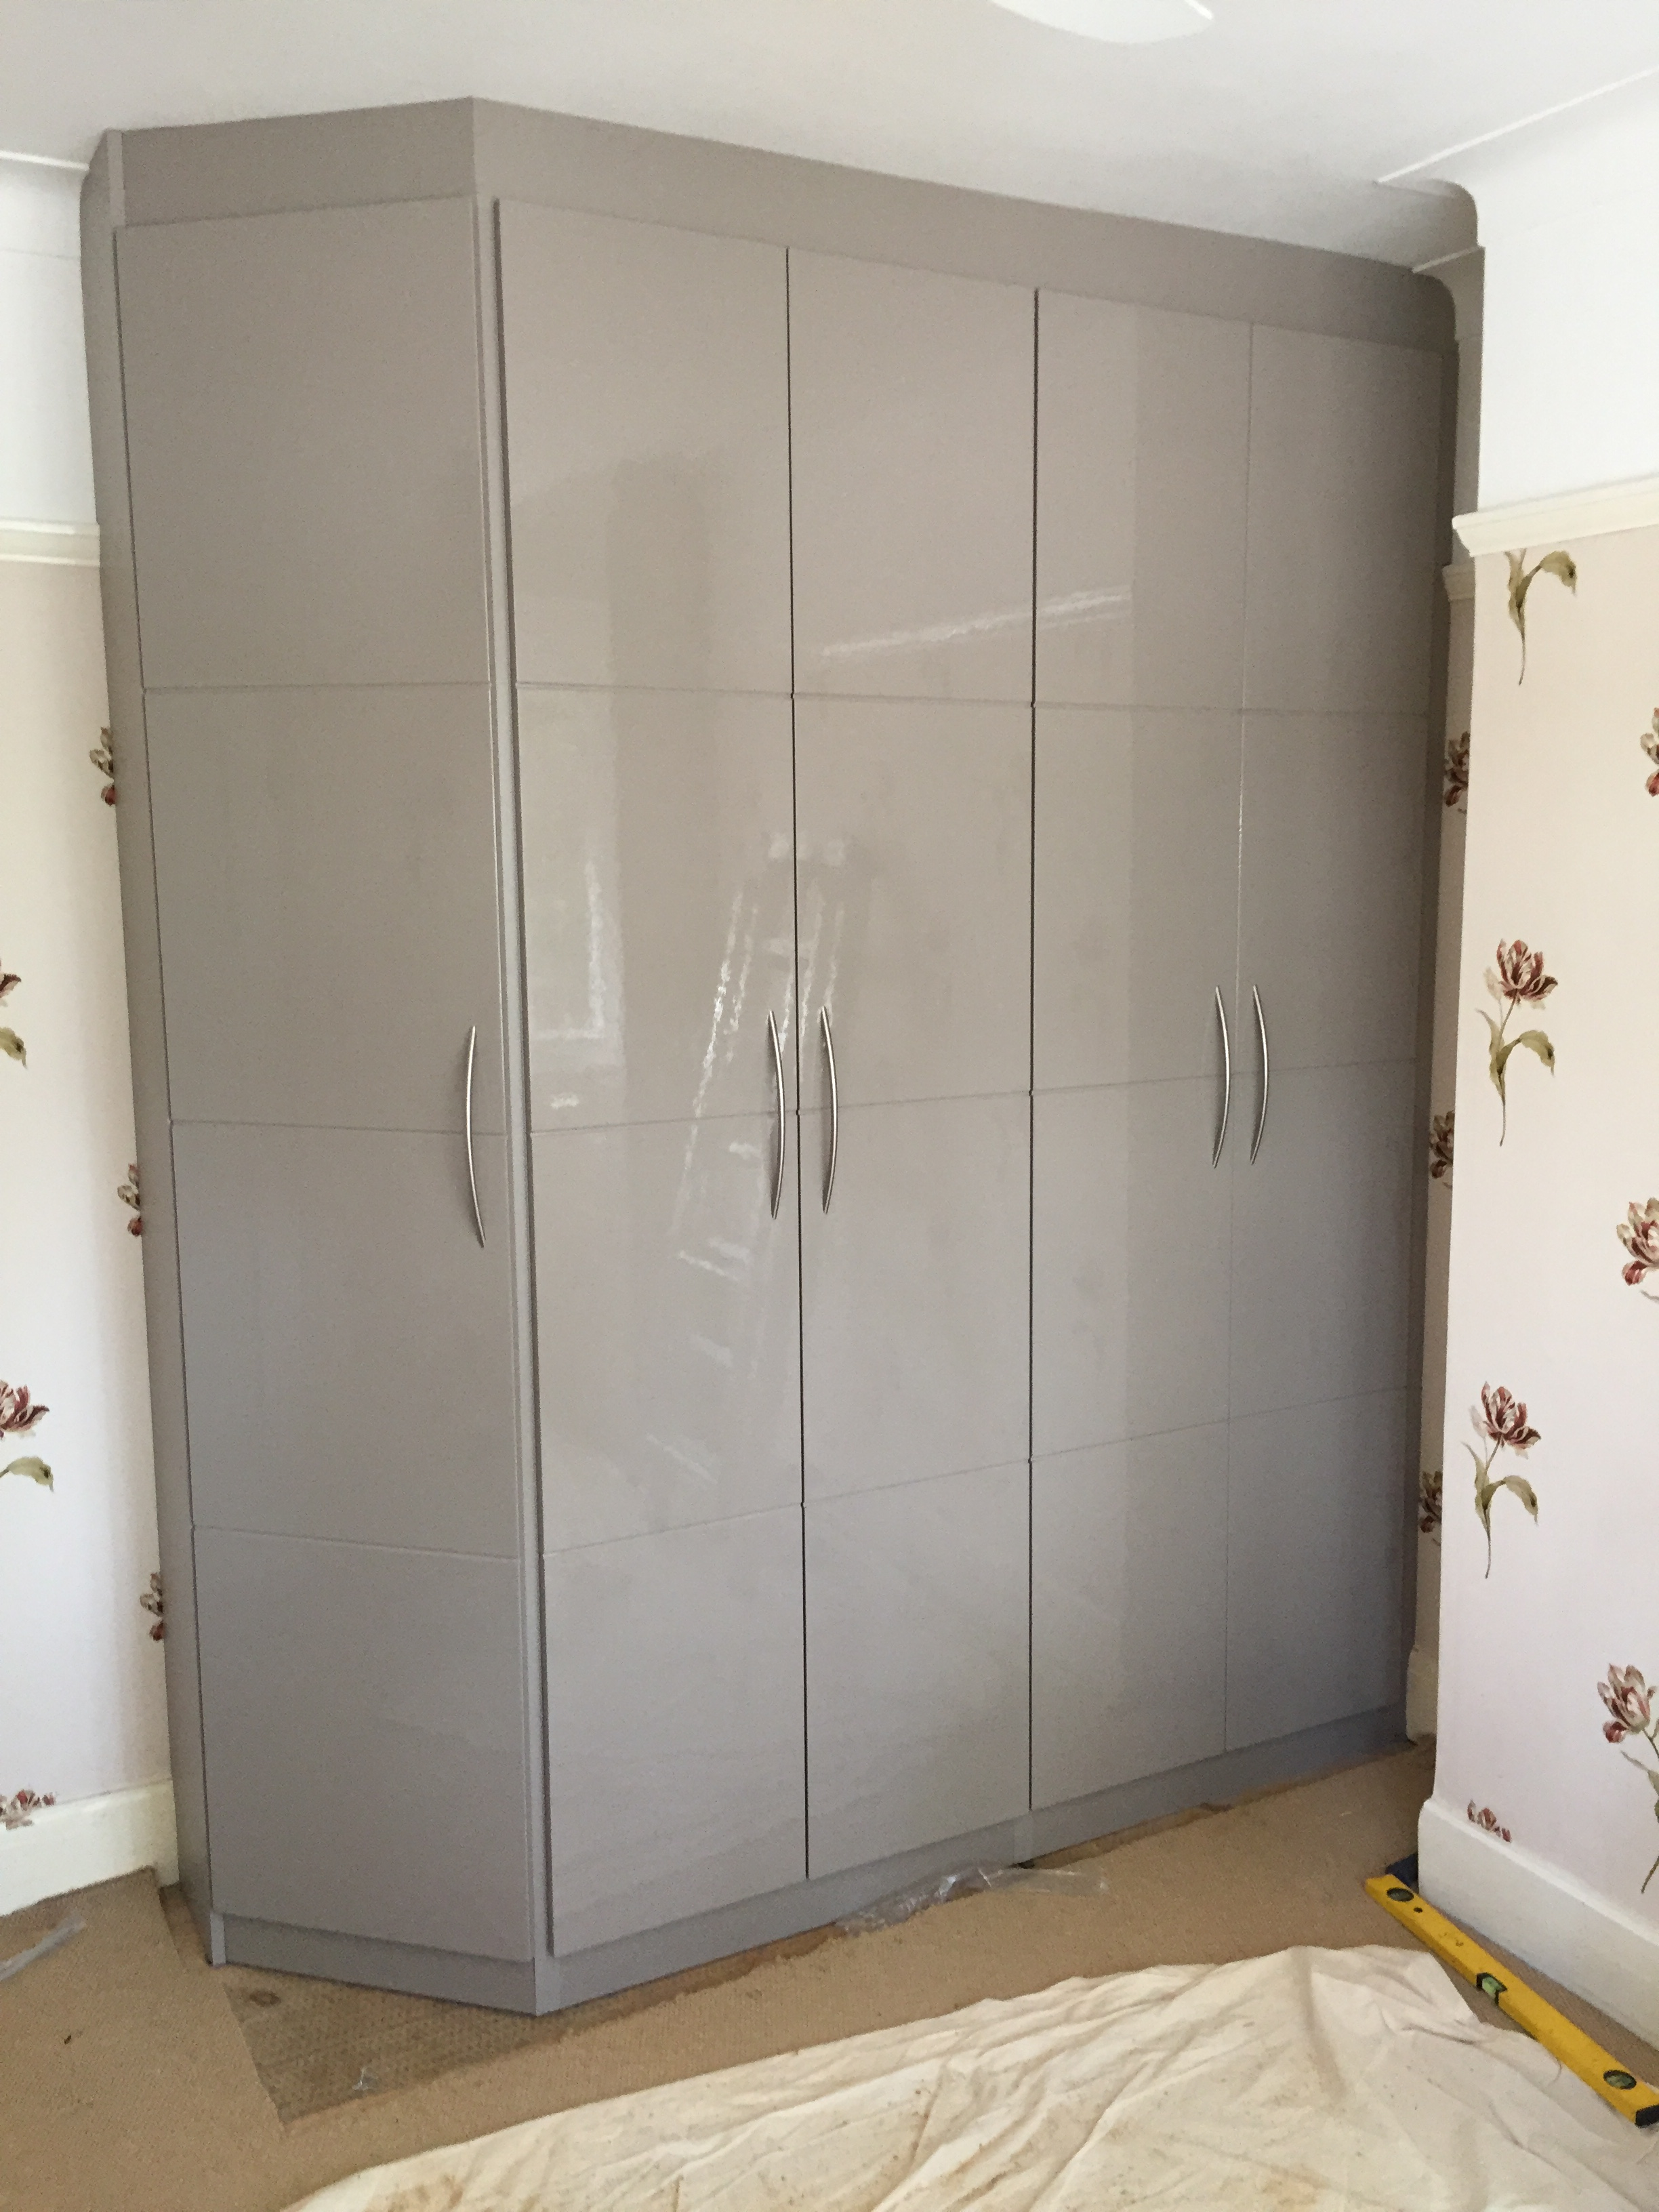 Hinged Doors3 3